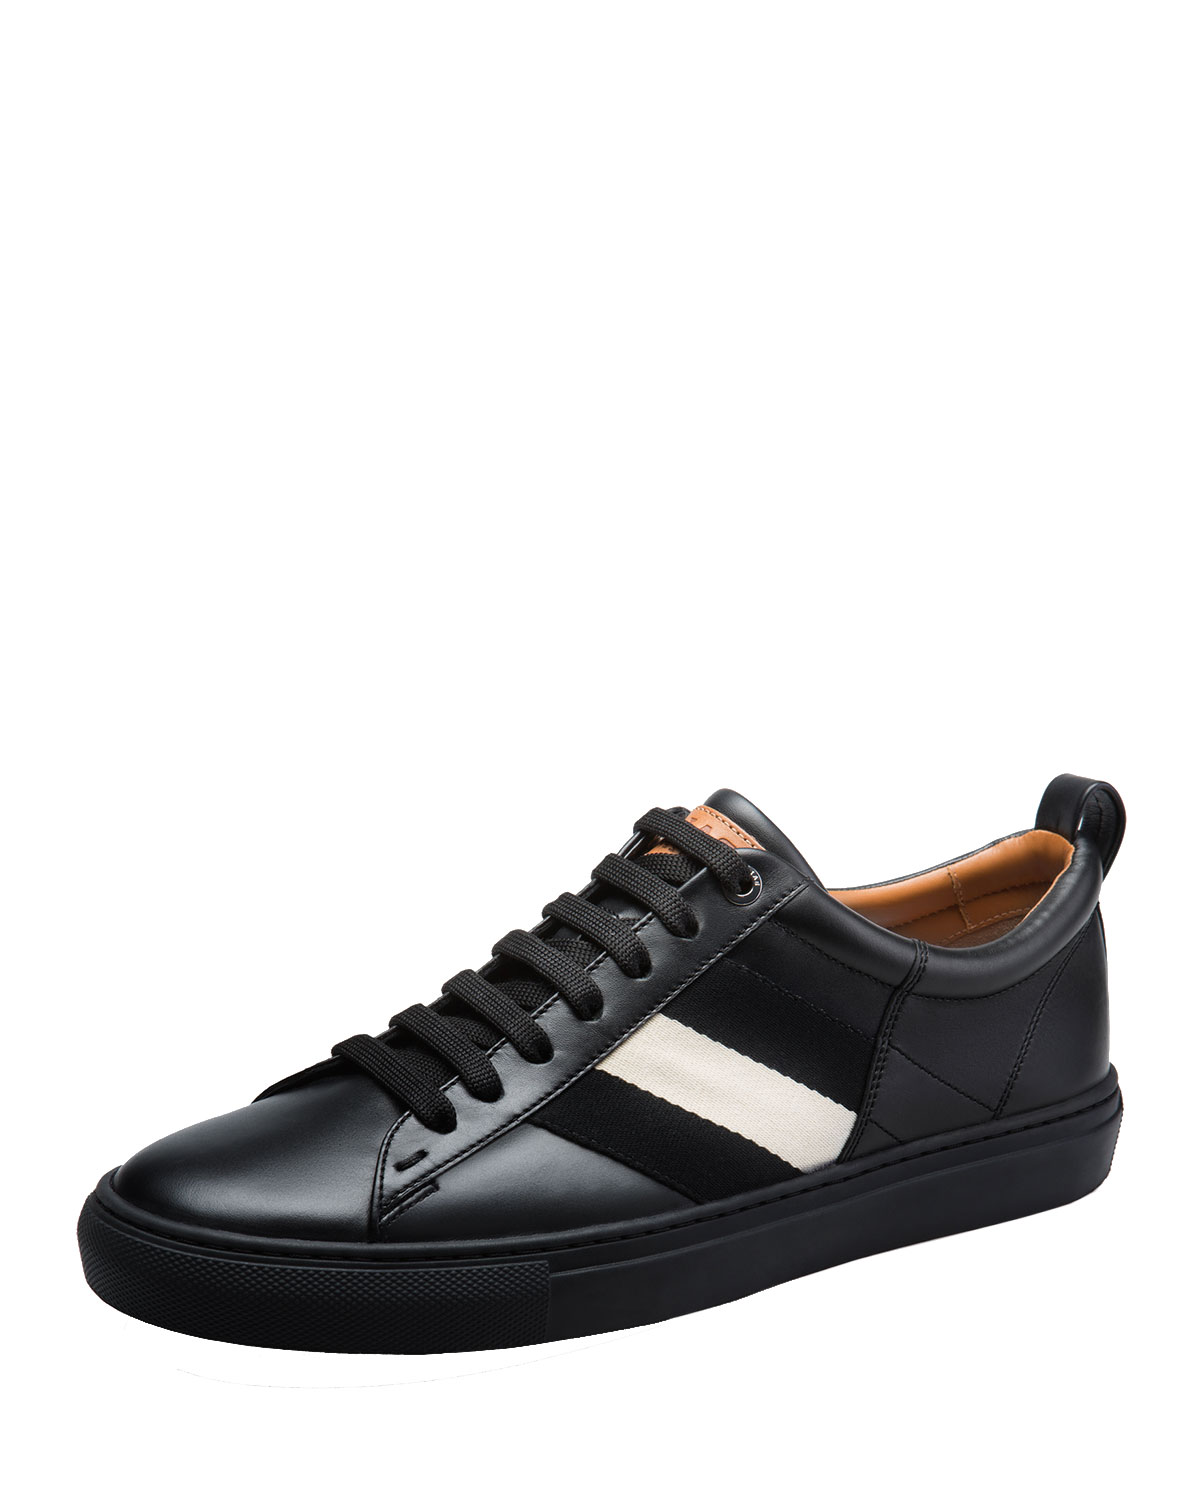 HELVIO - Sneaker low - black